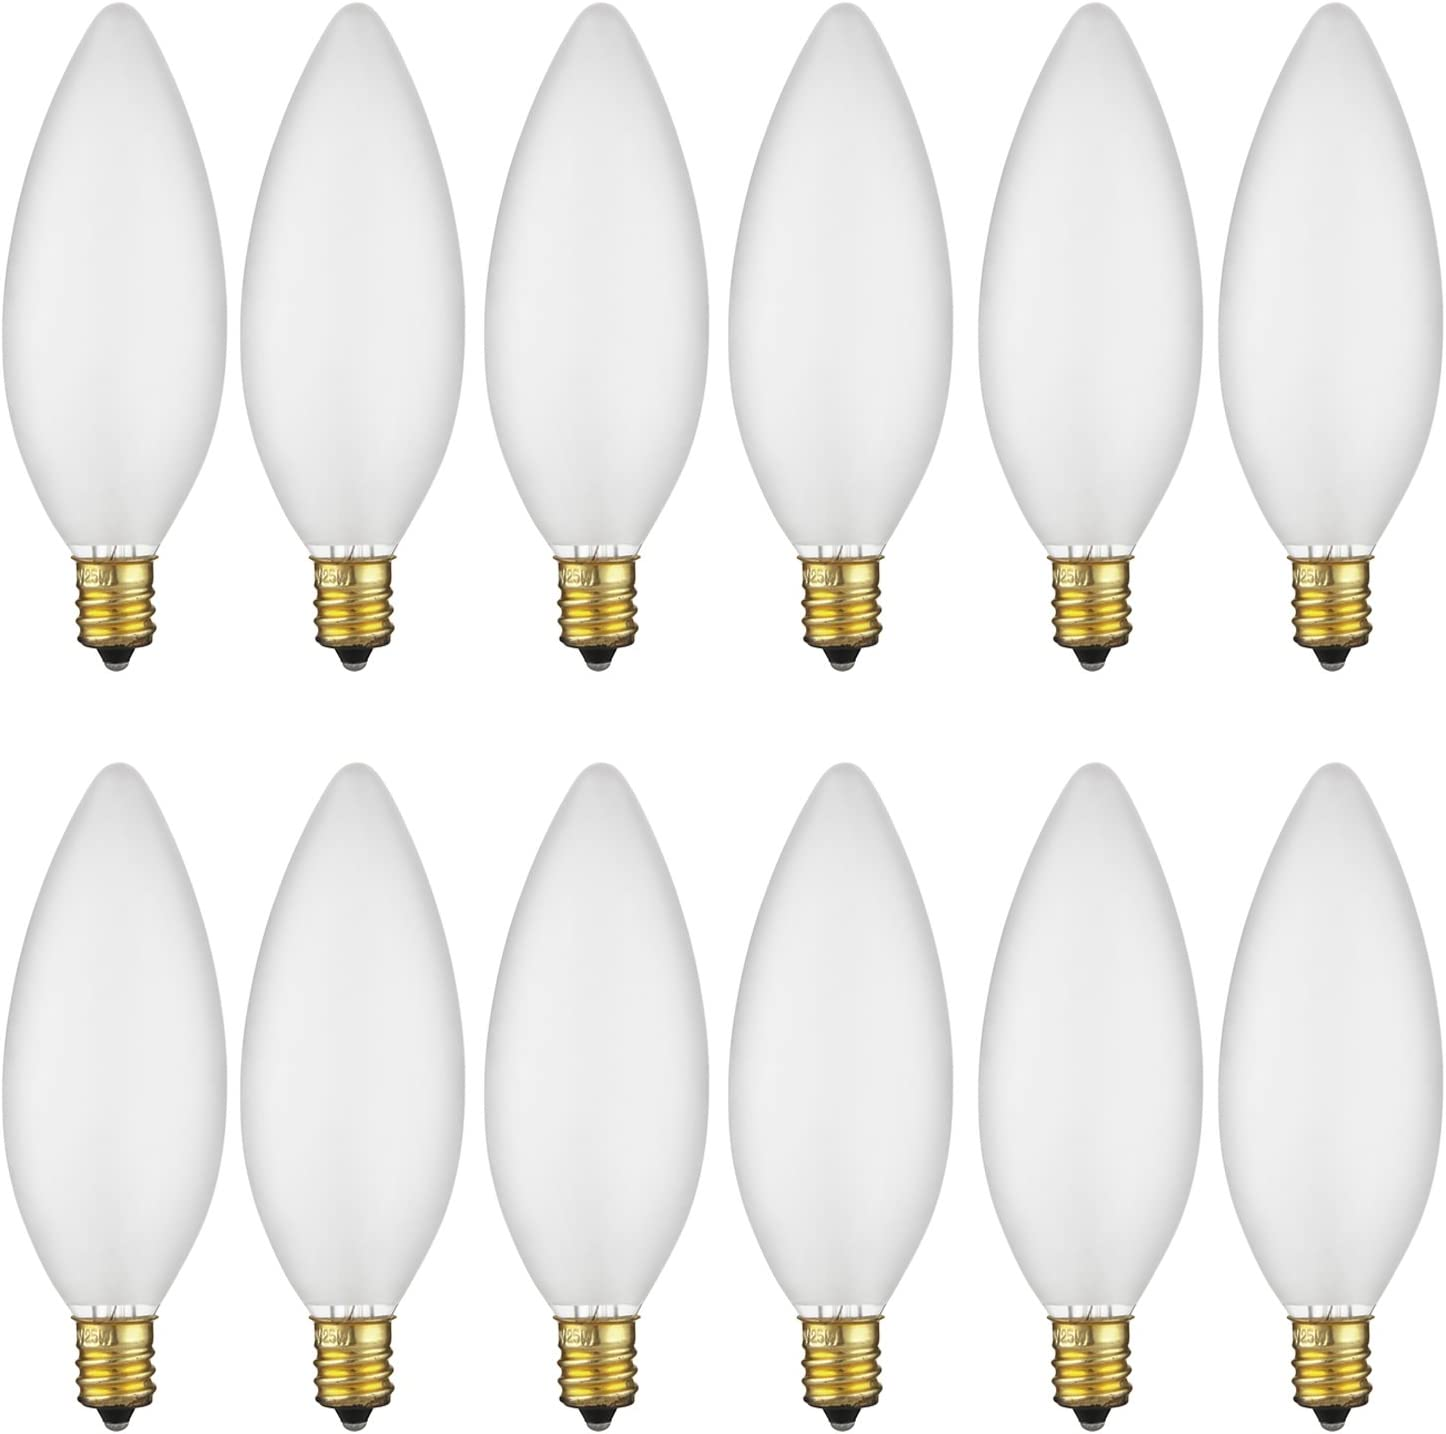 Sunlite 15CTF/25/12PK 15W Incandescent Petite Chandelier Light Bulb, Candelabra (E12) Base, Frosted Bulb (12 Pack)